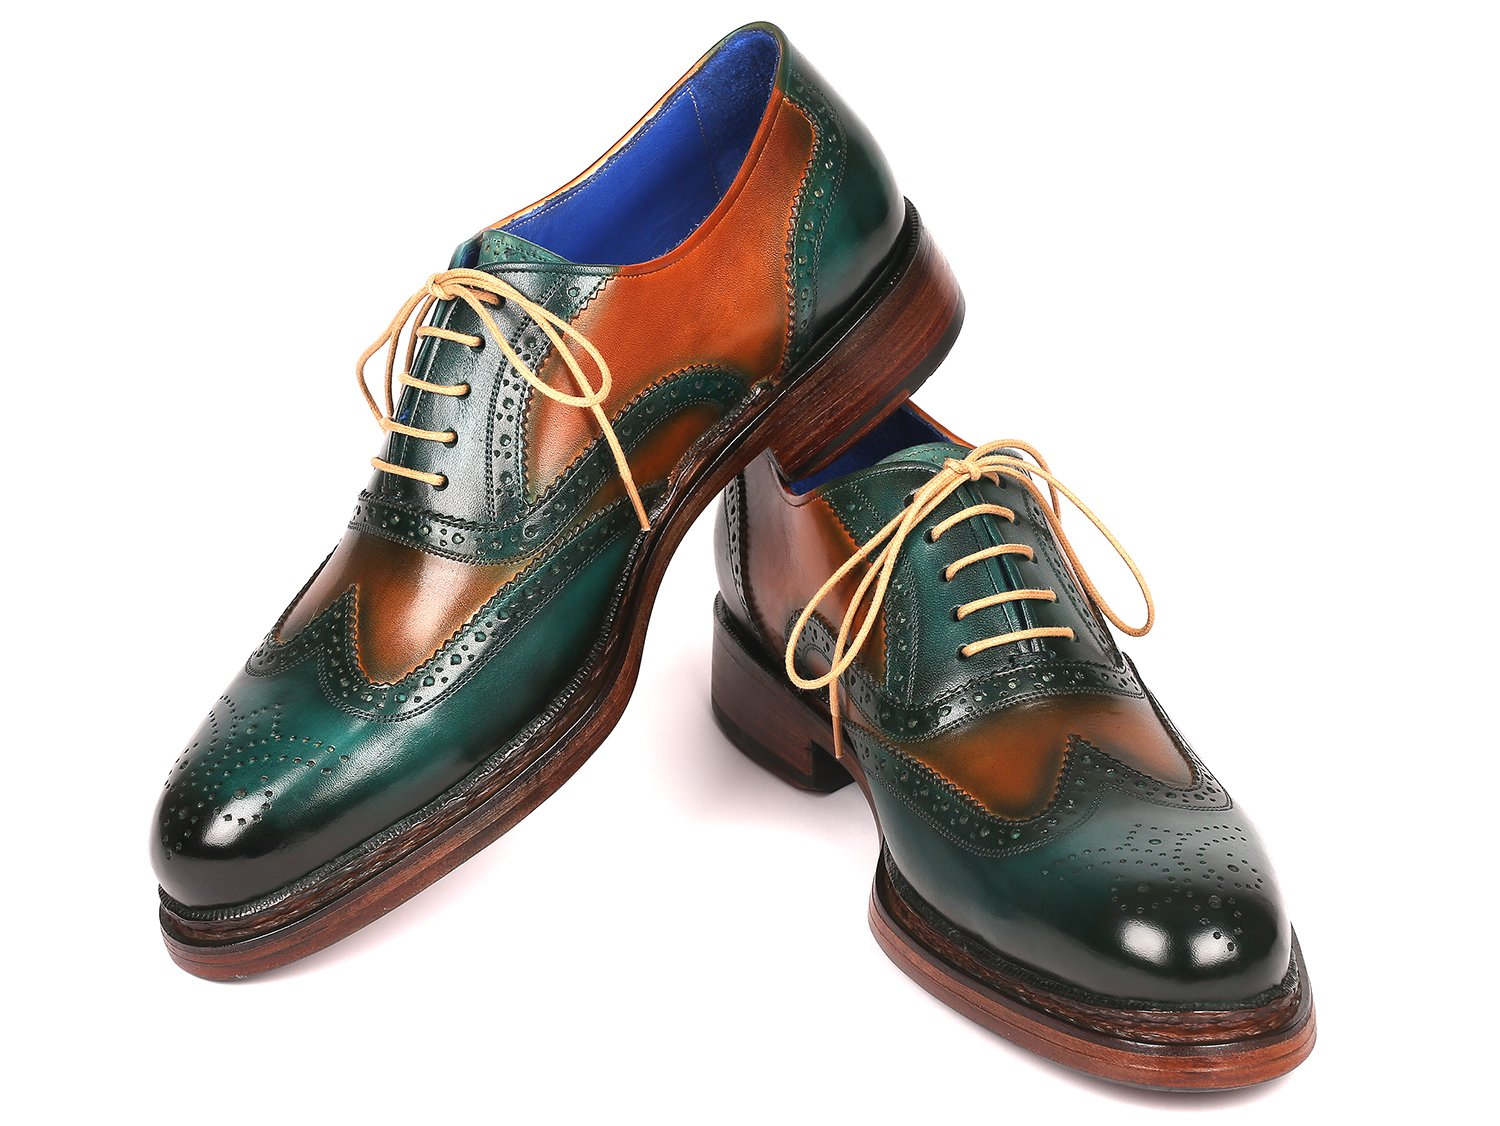 Paul Parkman Wingtip Oxfords Goodyear Welted Green & Tobacco (ID#027-GRN-TAB)